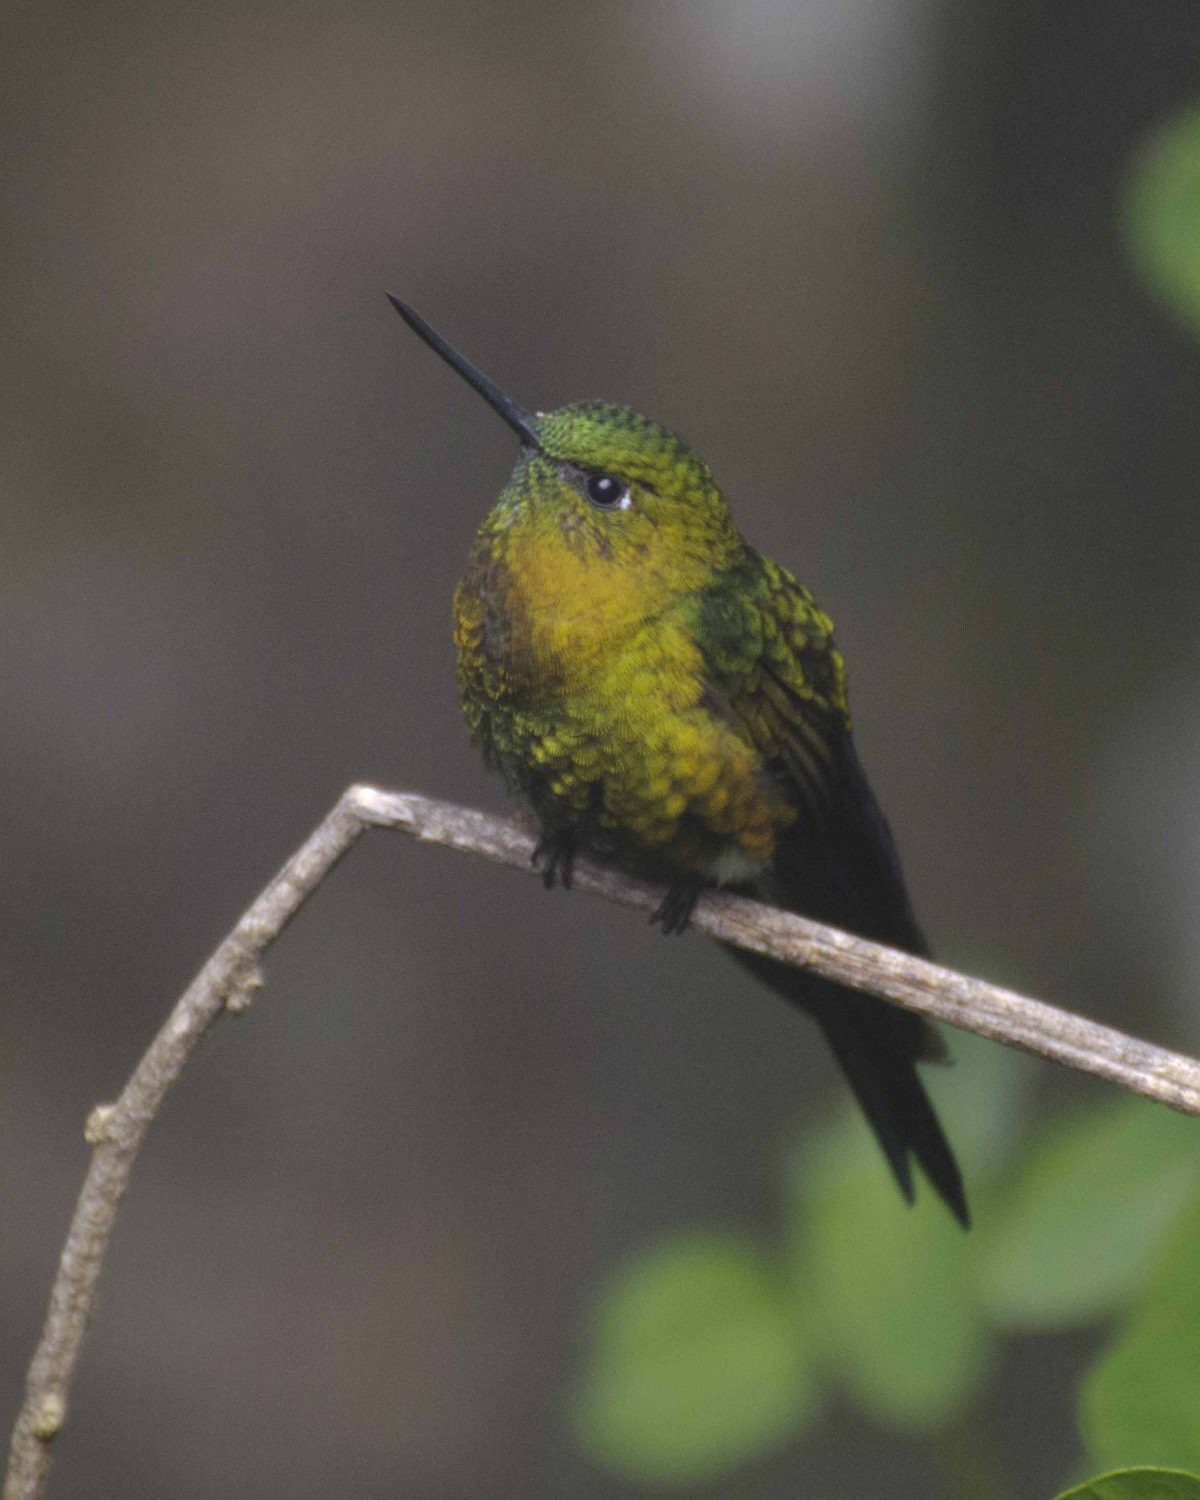 The Golden-breasted Puffleg can look very small when perched | ©Angela Drake